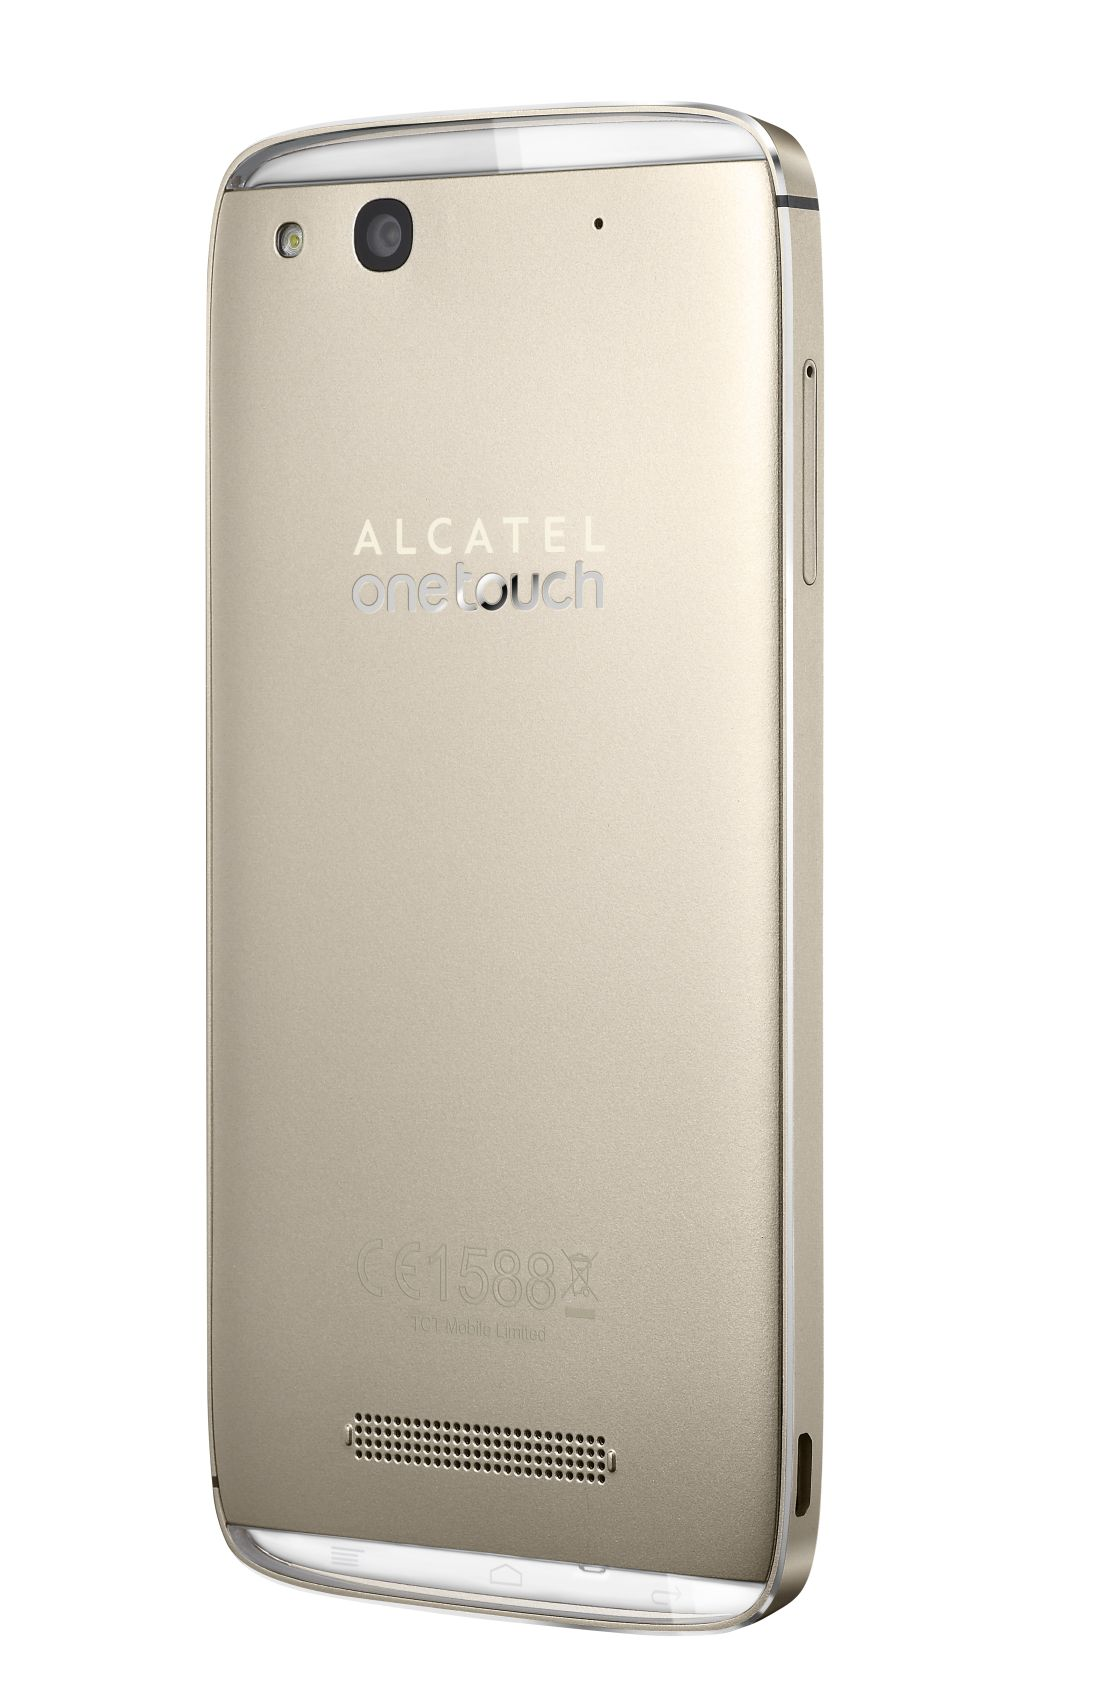 alcatel onetouch 6032 idol alpha gold 6032x 2balcz1 t s bohemia. Black Bedroom Furniture Sets. Home Design Ideas